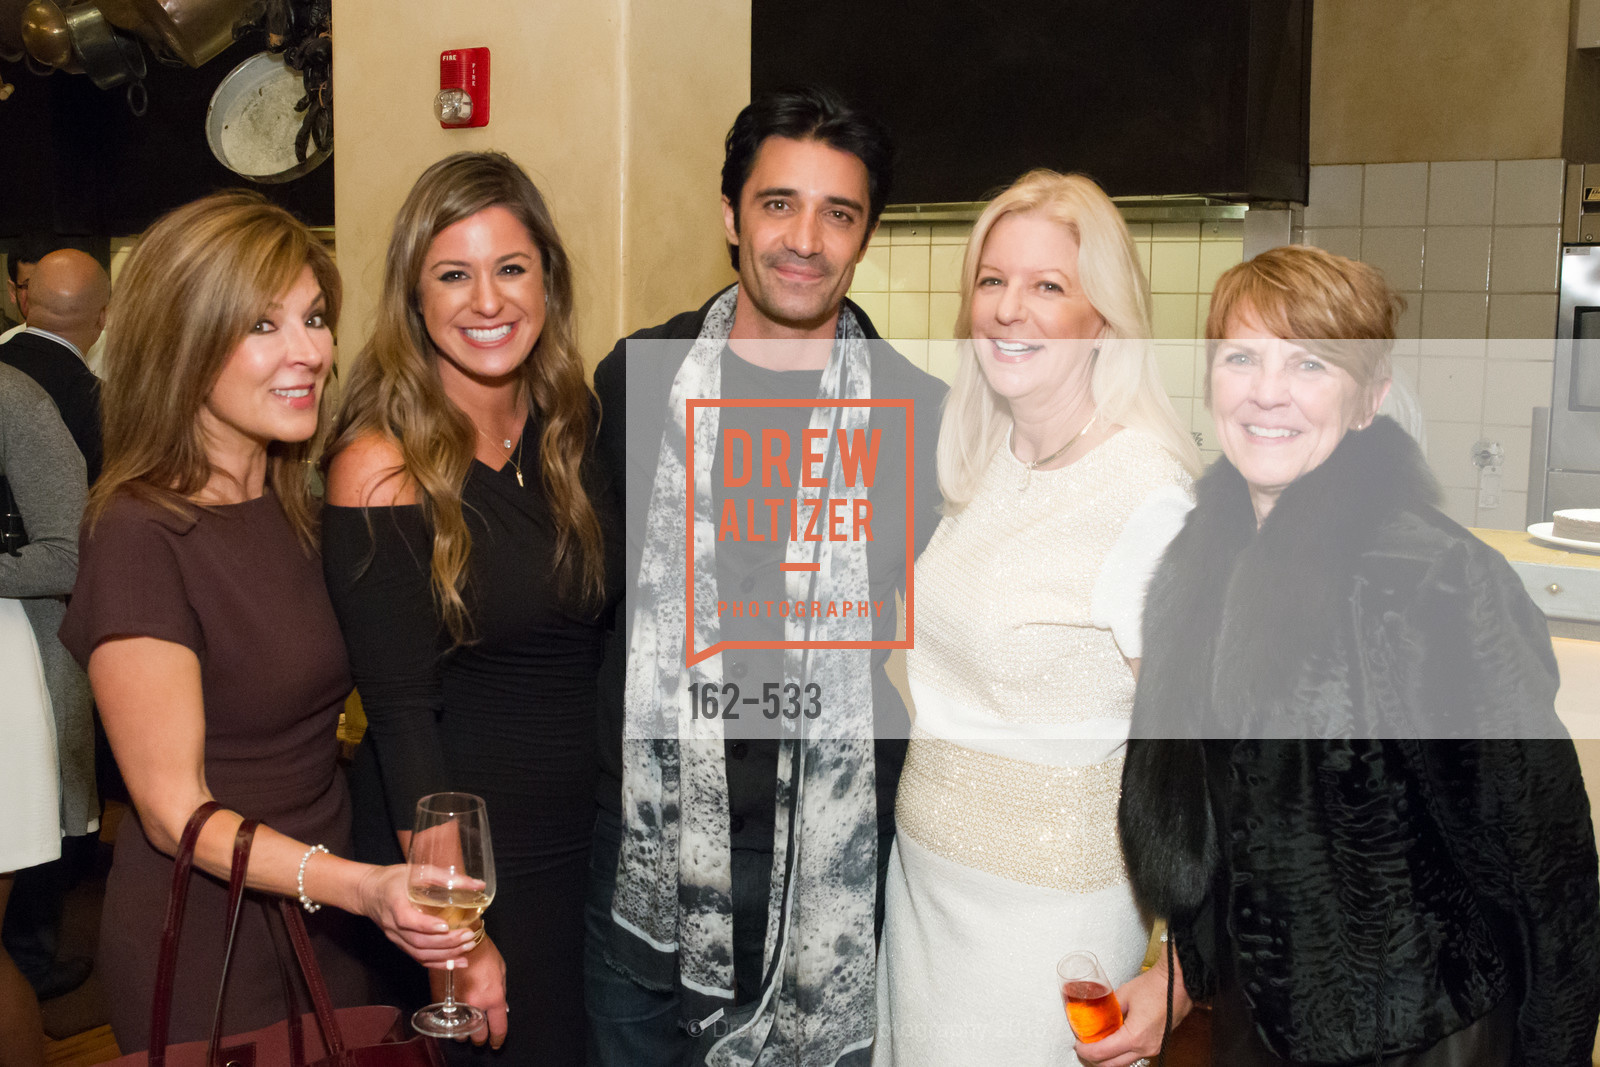 Vicki Liviakis, Alexis MacMunn, Gilles Marini, Judy Padis, Pat Grillos, Hellenic Charity Ball Cocktail Reception, Kokkari. 200 Jackson St, San Francisco, CA 94111, November 13th, 2015,Drew Altizer, Drew Altizer Photography, full-service agency, private events, San Francisco photographer, photographer california